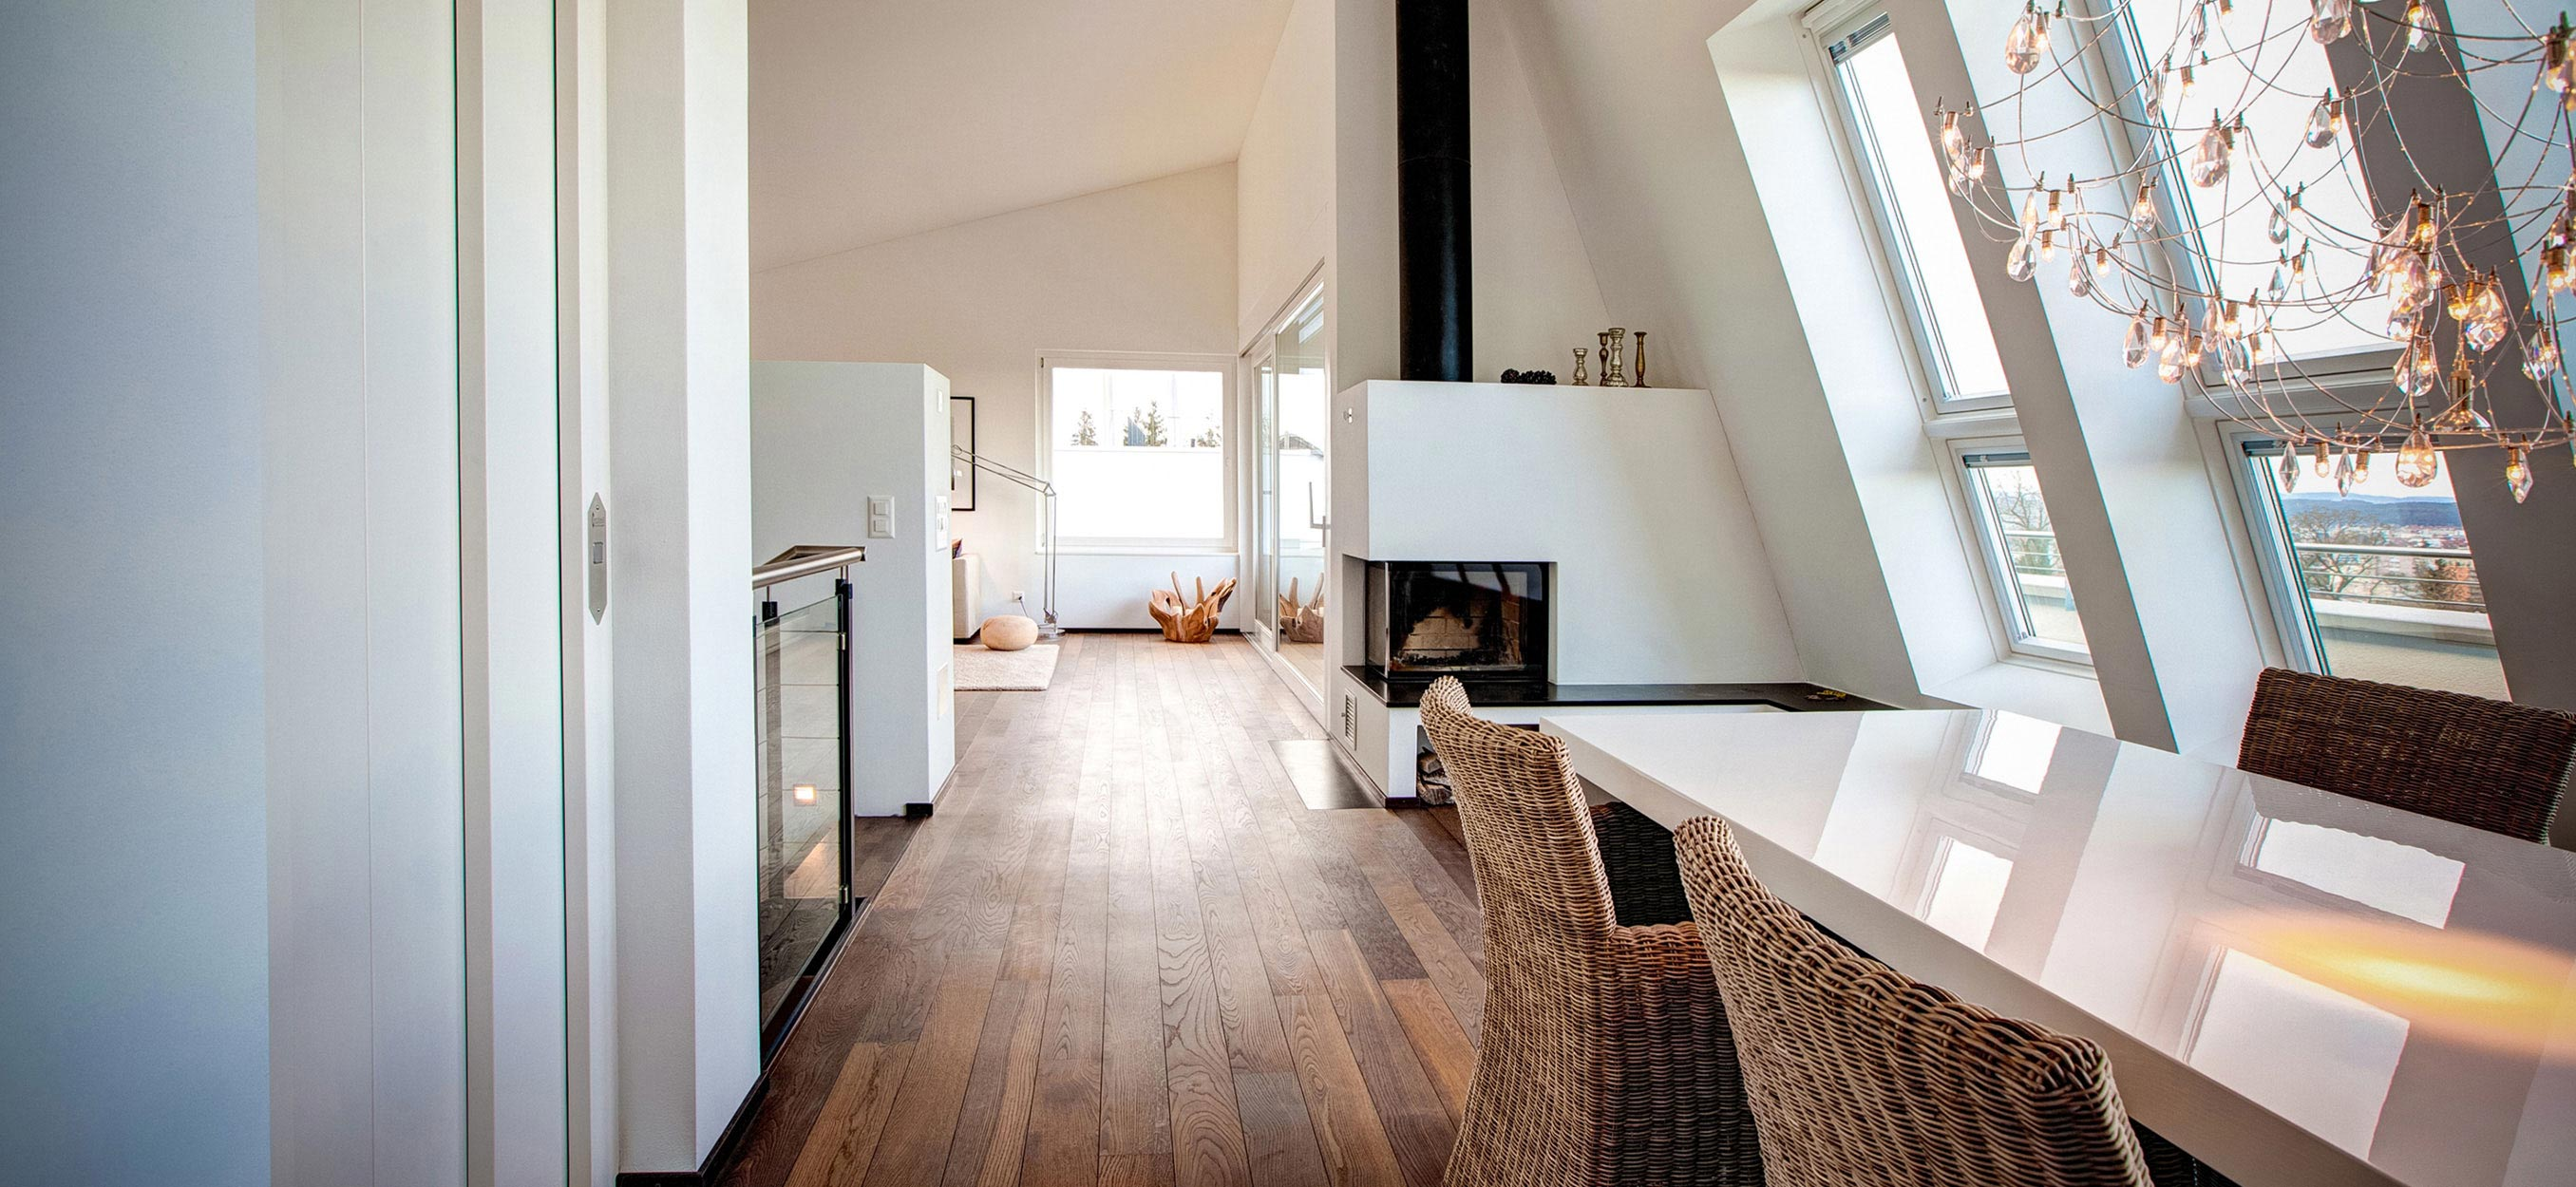 Pixroom Header Startbilder 04